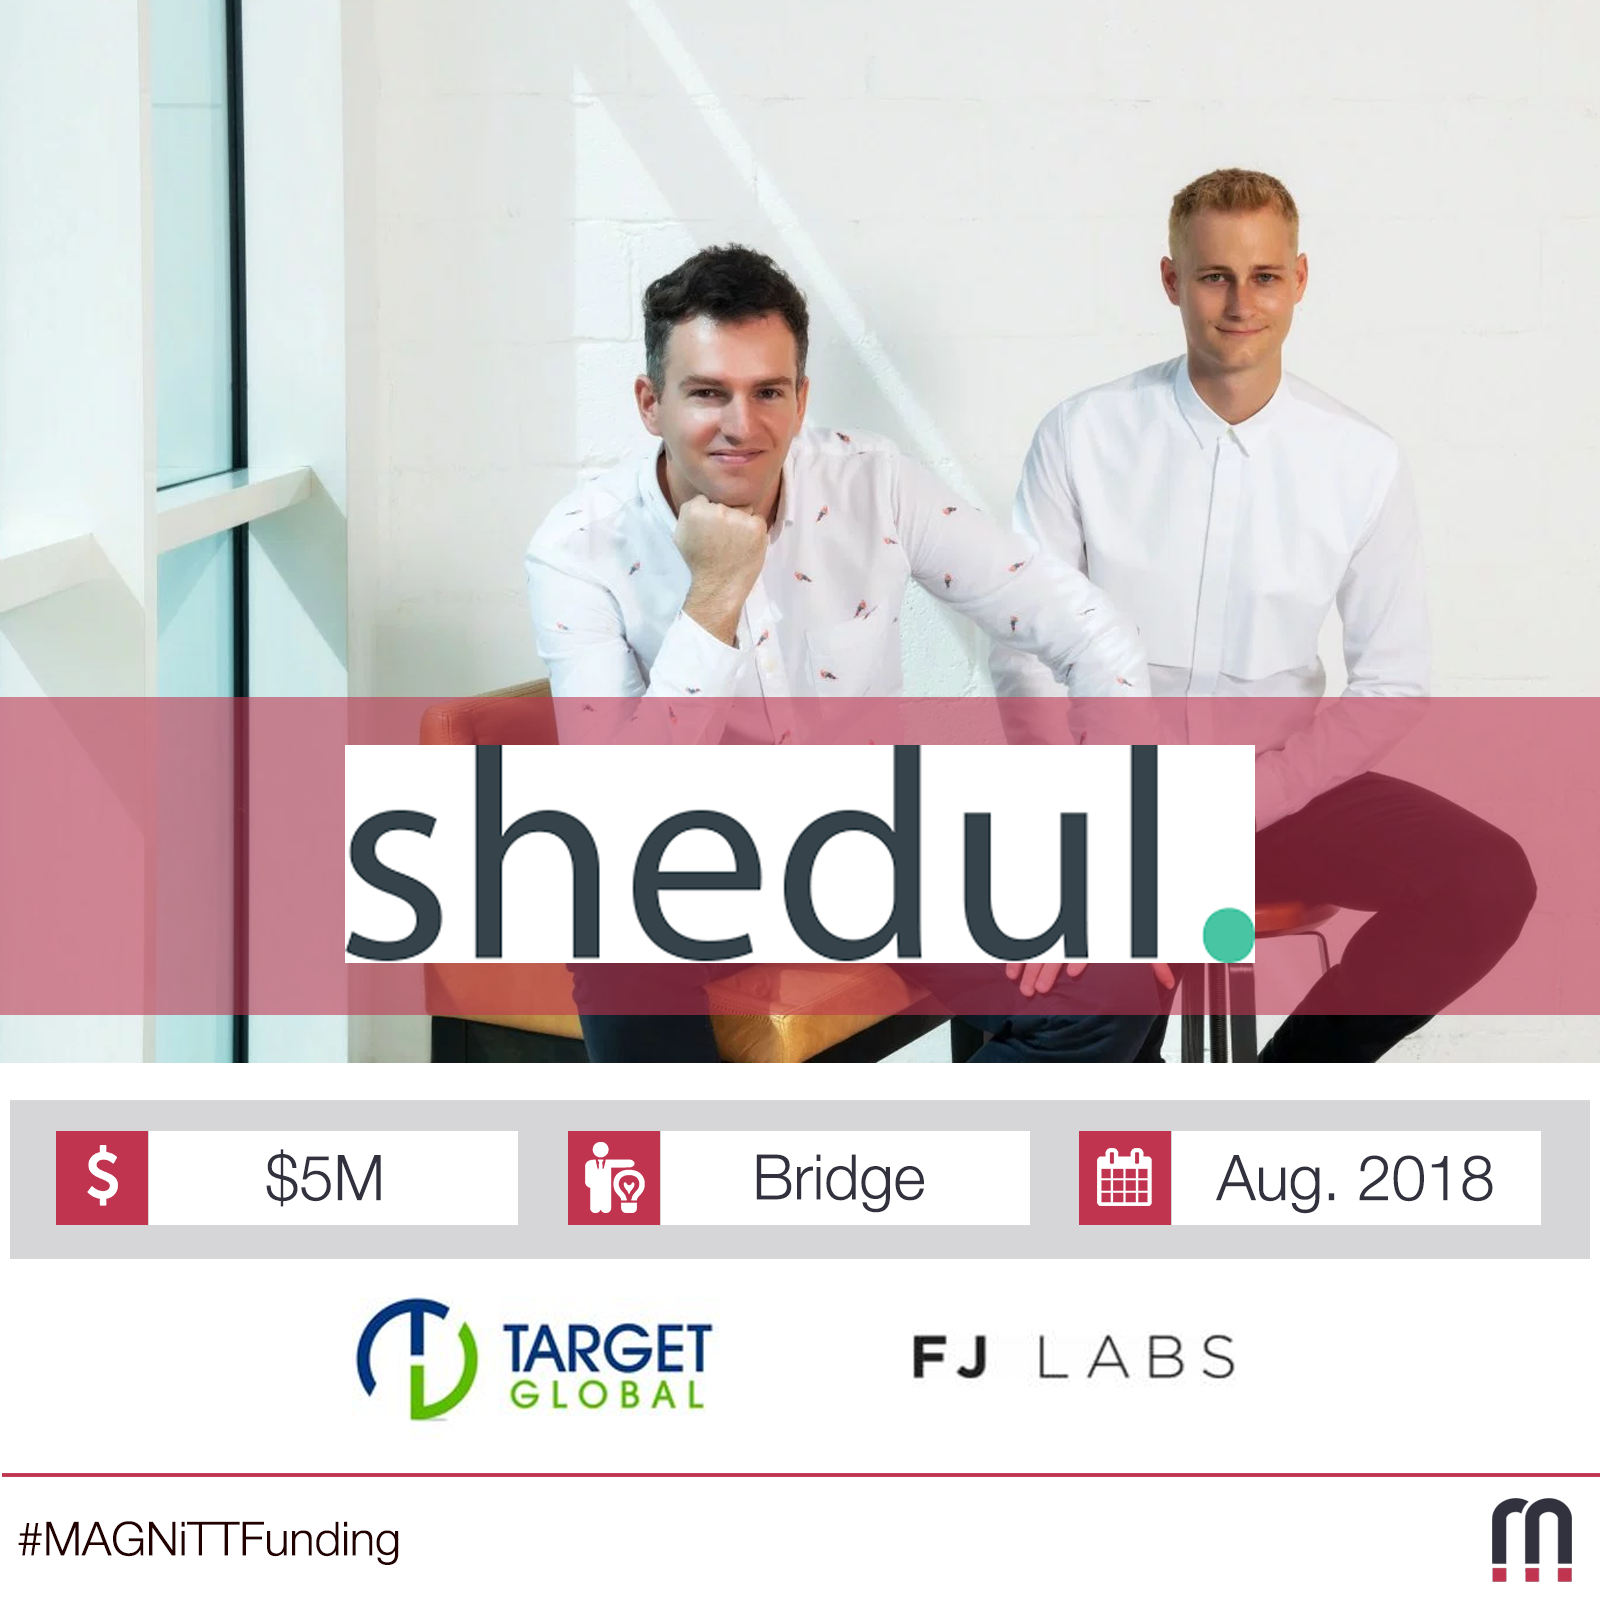 Shedul, the booking platform for salons and spas, picks up $5M investment